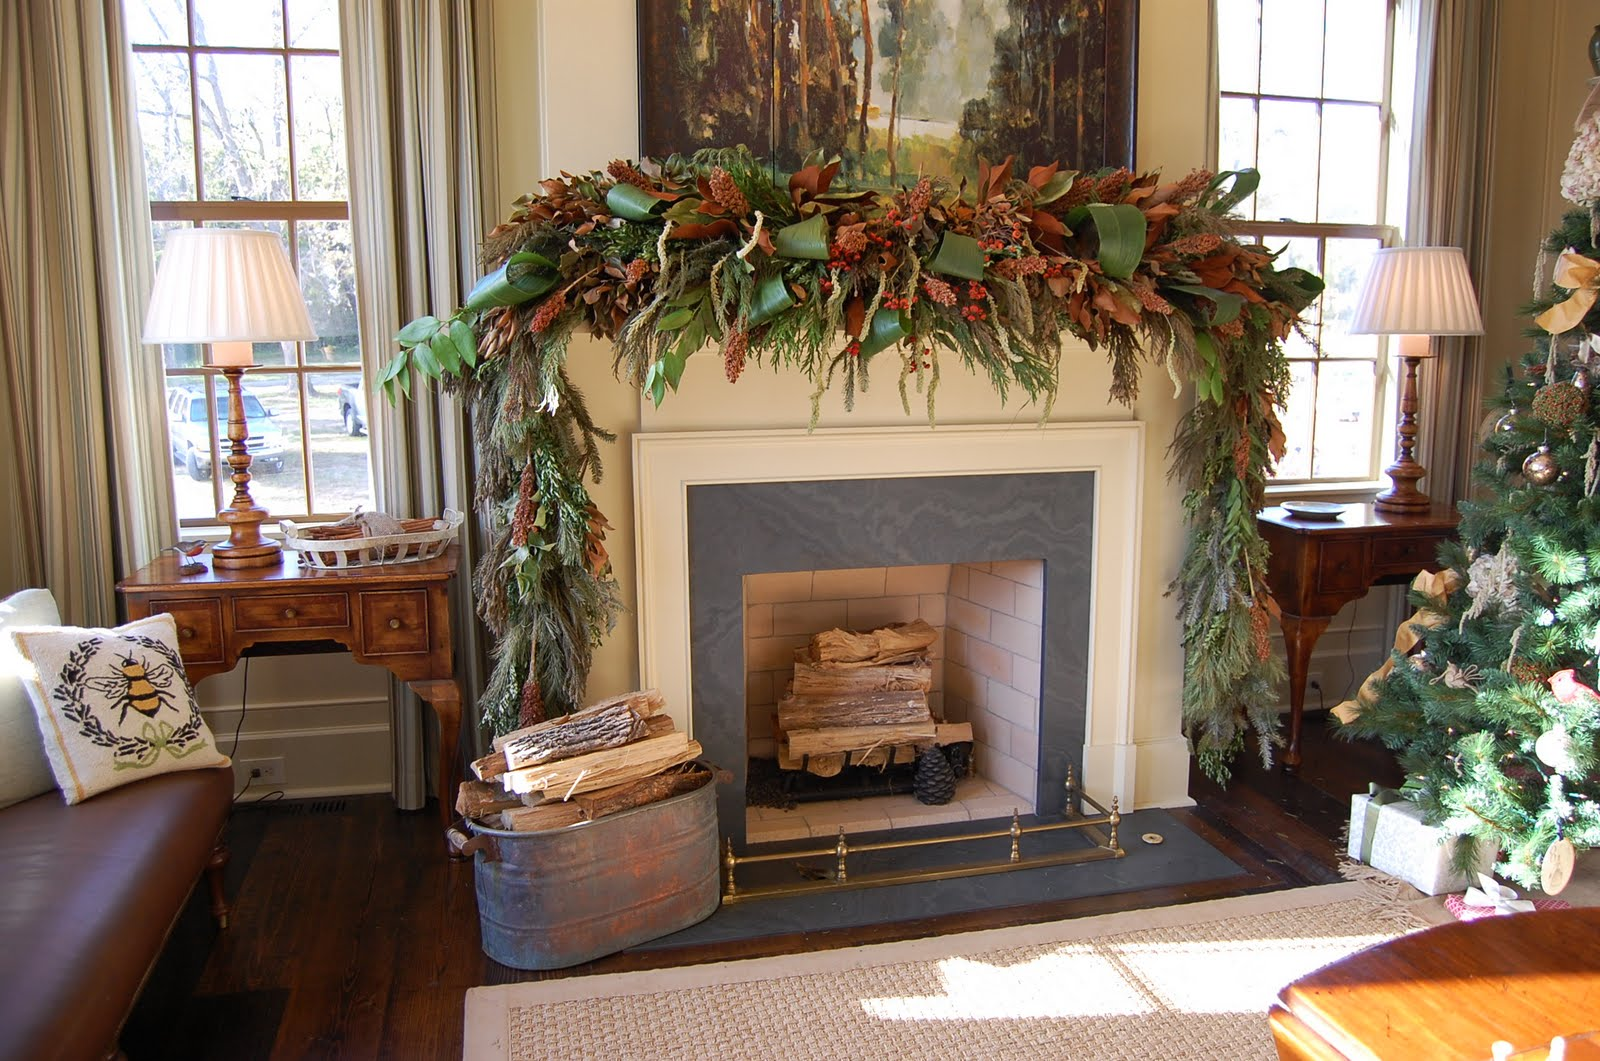 charming-design-mantel-christmas-decor-christmas-fireplace-garland-on-decor-with-mantel-christmas-decorations.jpg